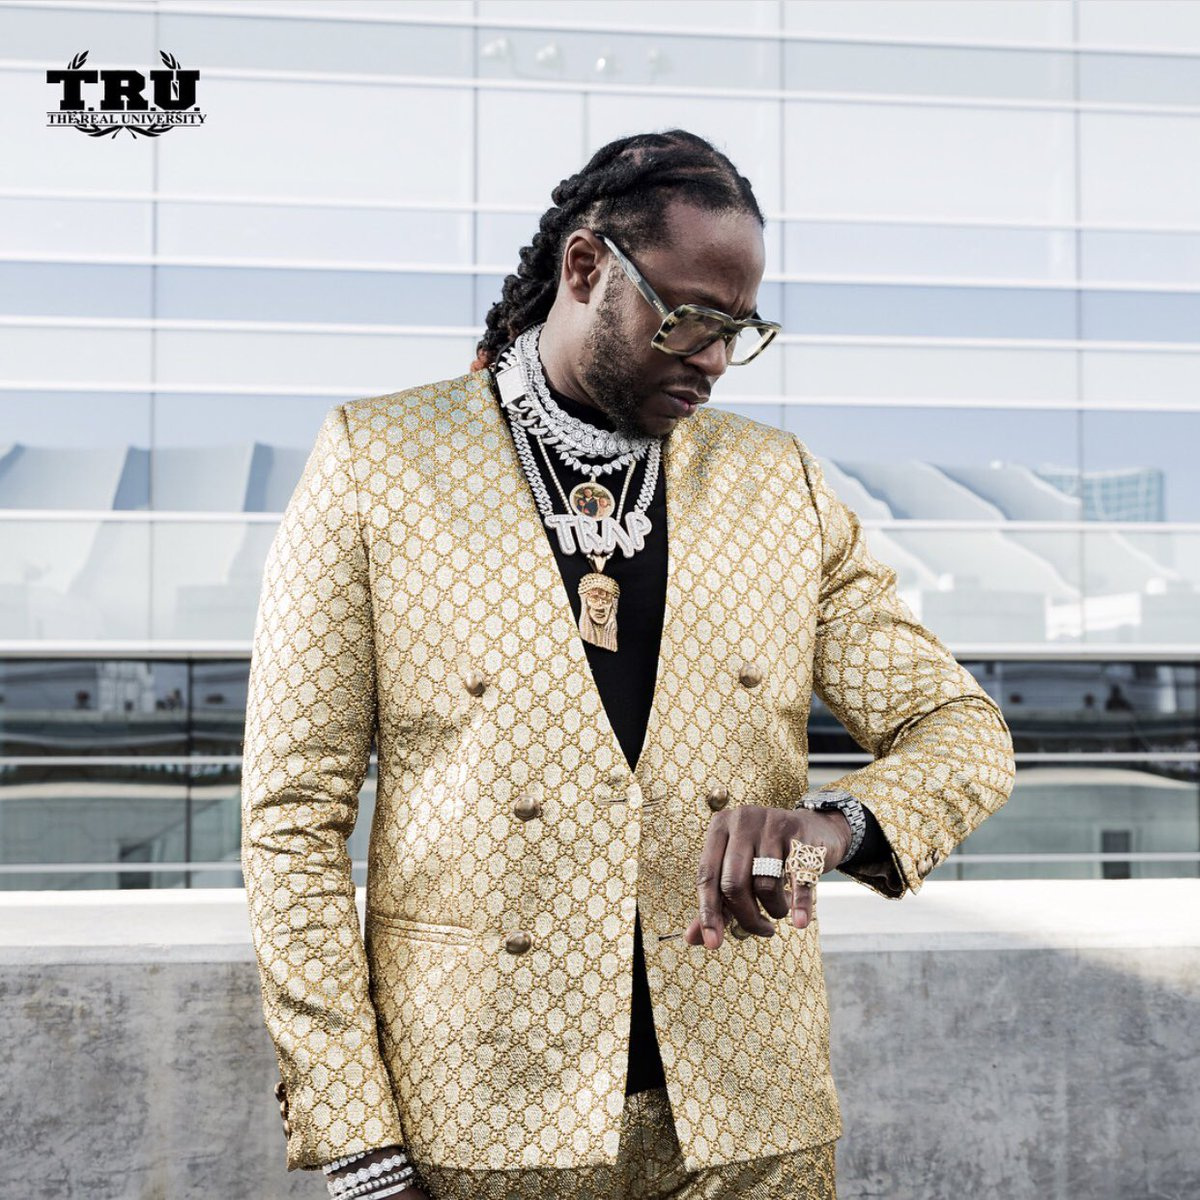 Image result for 2 chainz drip